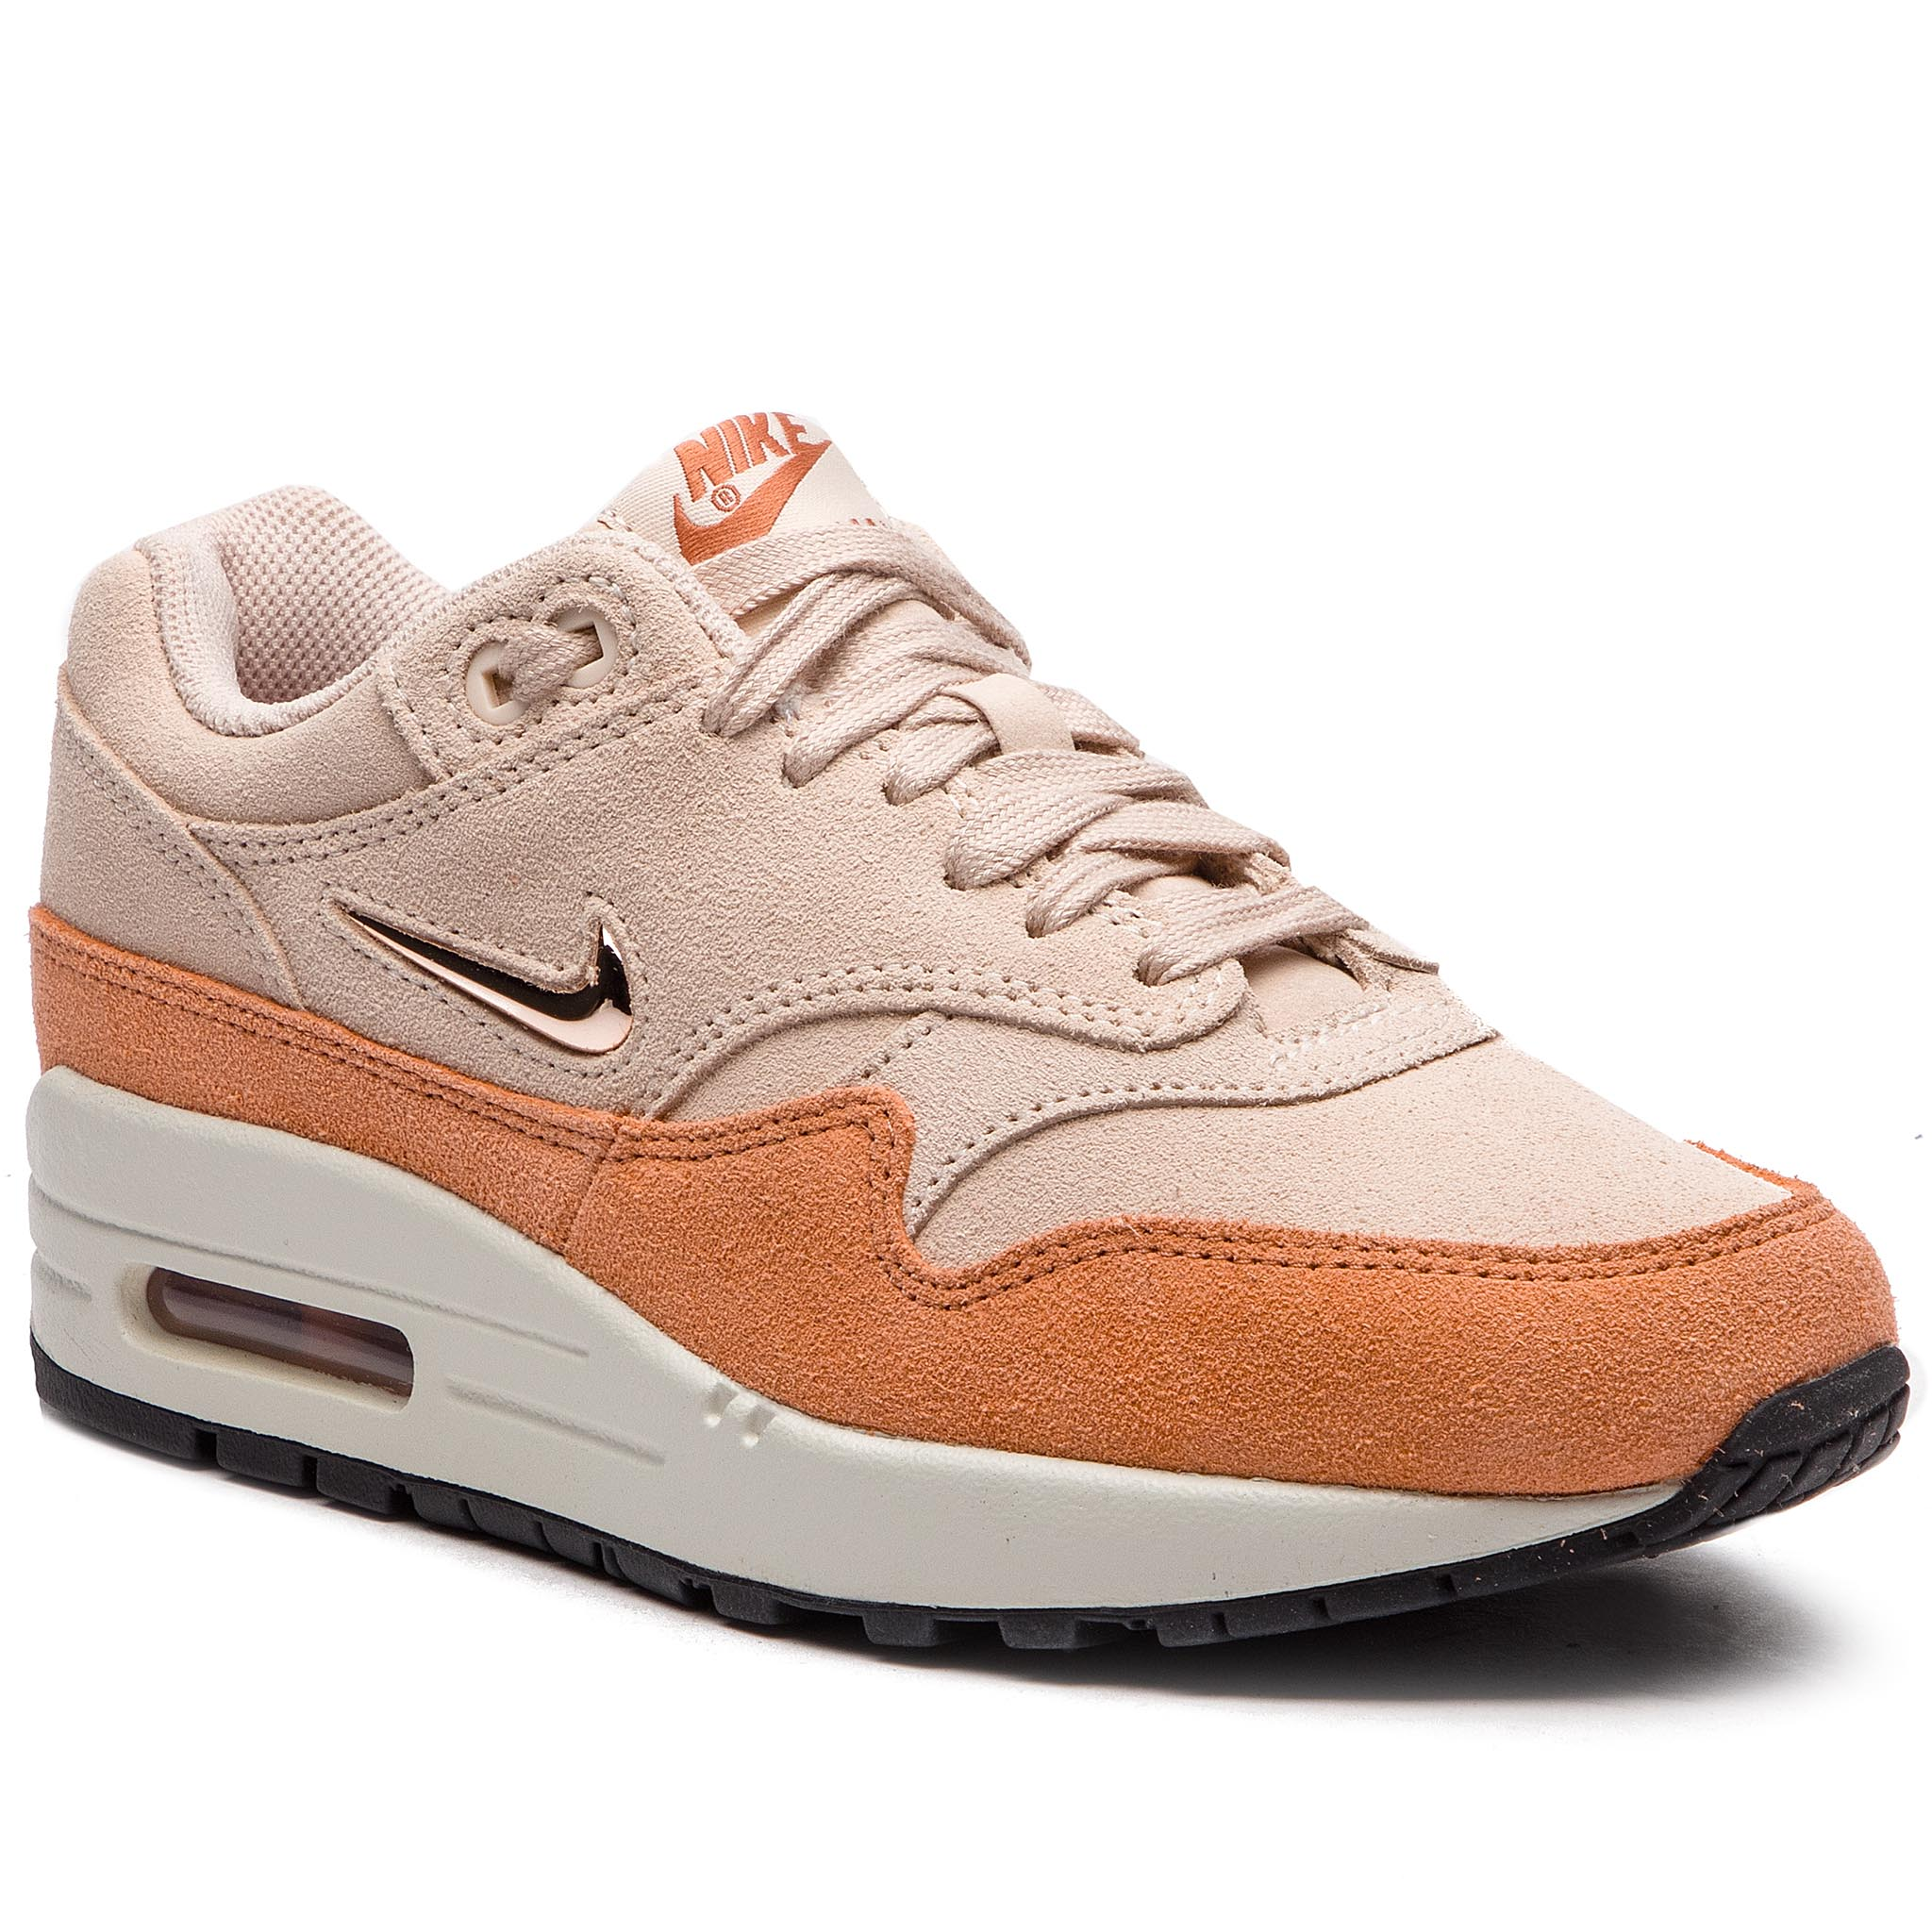 save off 8d844 e6c8c Shoes NIKE Air Max 1 Premium Sc AA0512 800 Guava Ice Mtlc Red Bronze